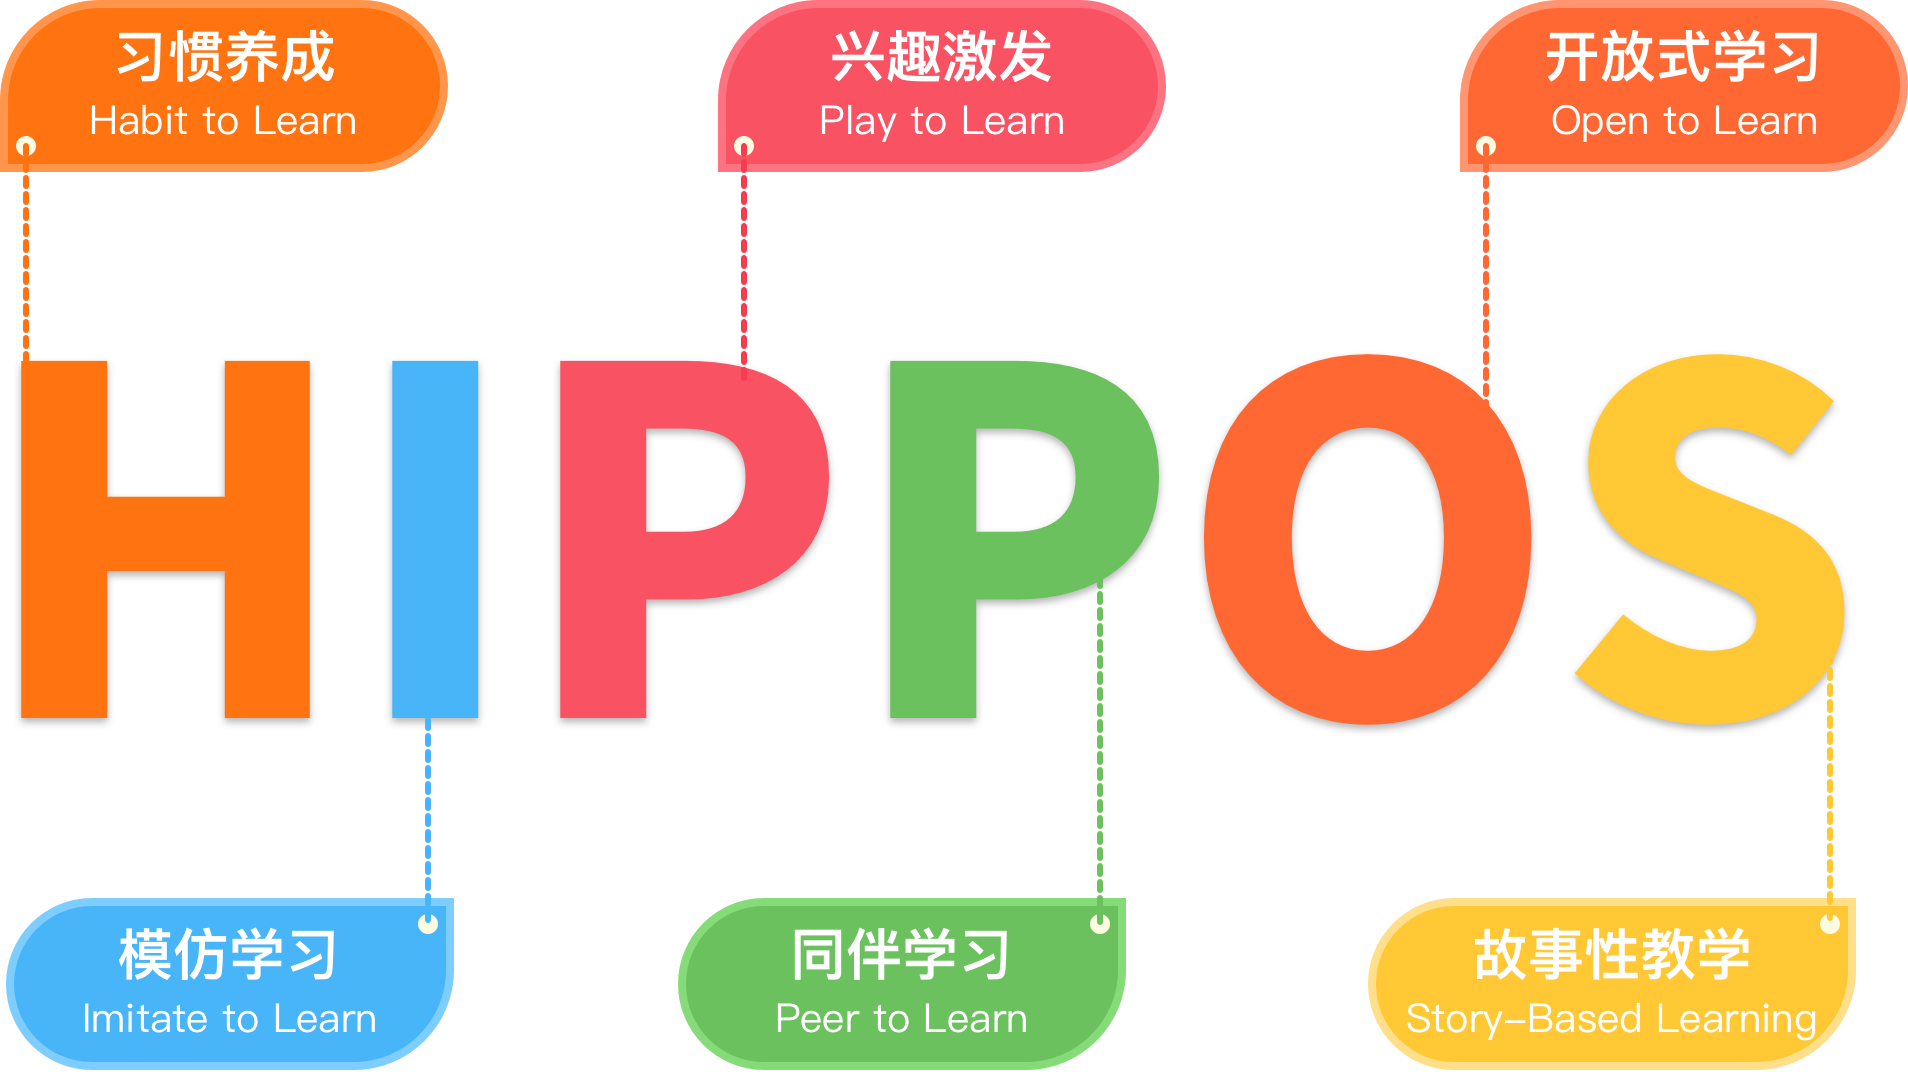 HIPPOS教学法:Habit to Learn 养成习惯;Imitate to Learn 模仿学习;Play to Learn 兴趣激发;Peer to Learn 同伴学习;Open to Learn 开放式学习;Story-Based Learning 故事性教学